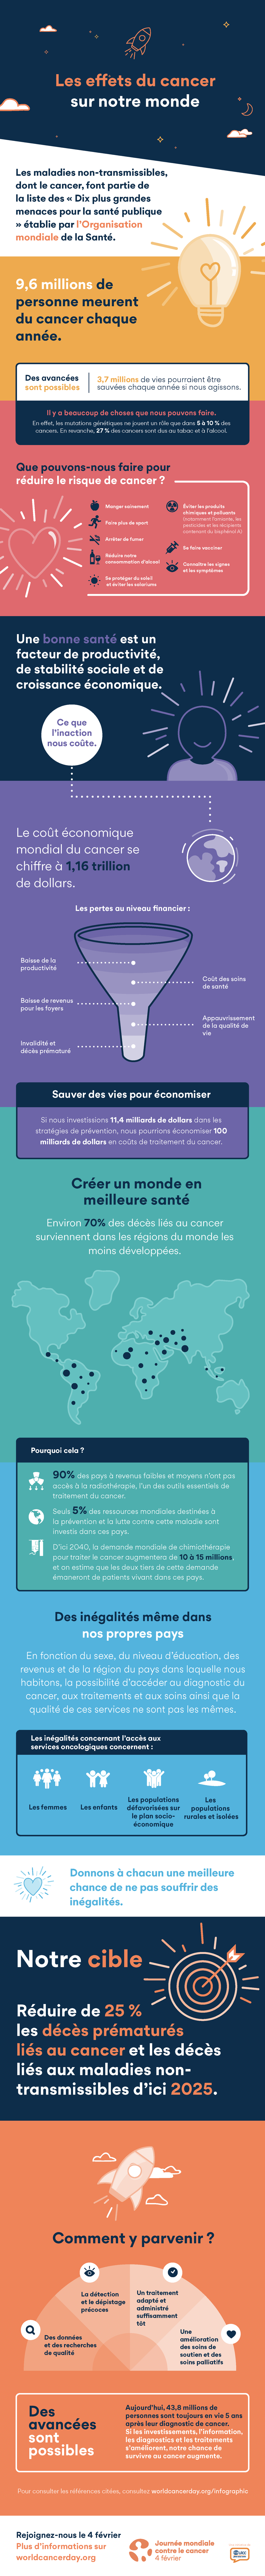 Cancer infographie